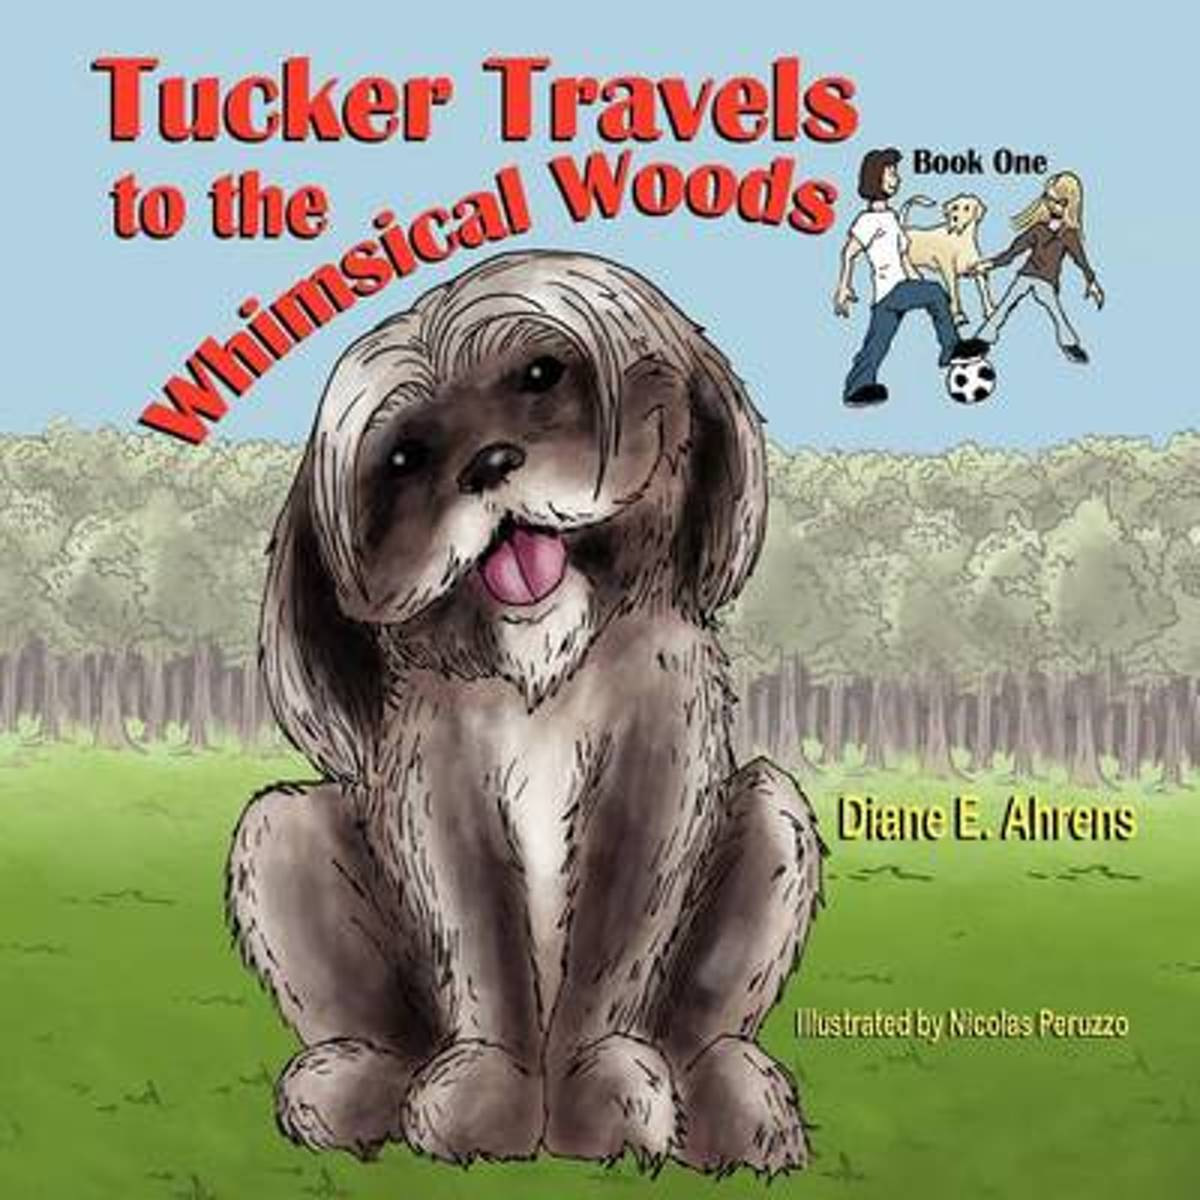 Tucker Travels to the Whimsical Woods